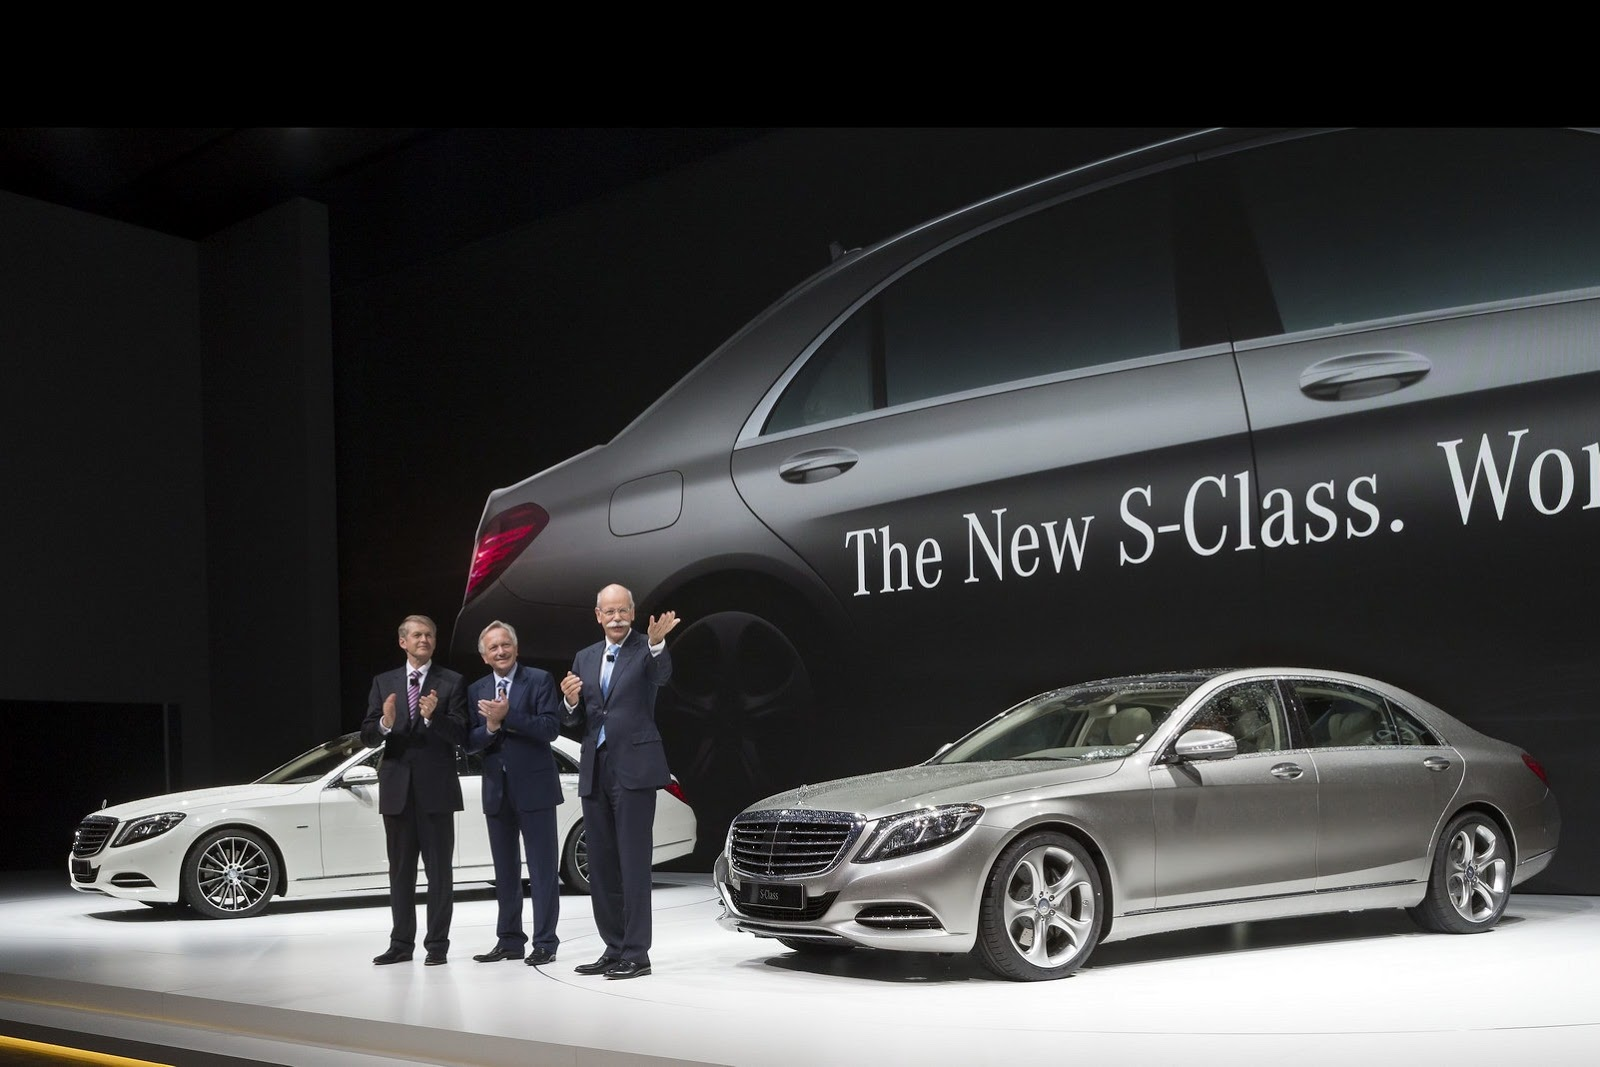 2014 Mercedes Benz S-Class Reveal Event - SMADE MEDIA (8)